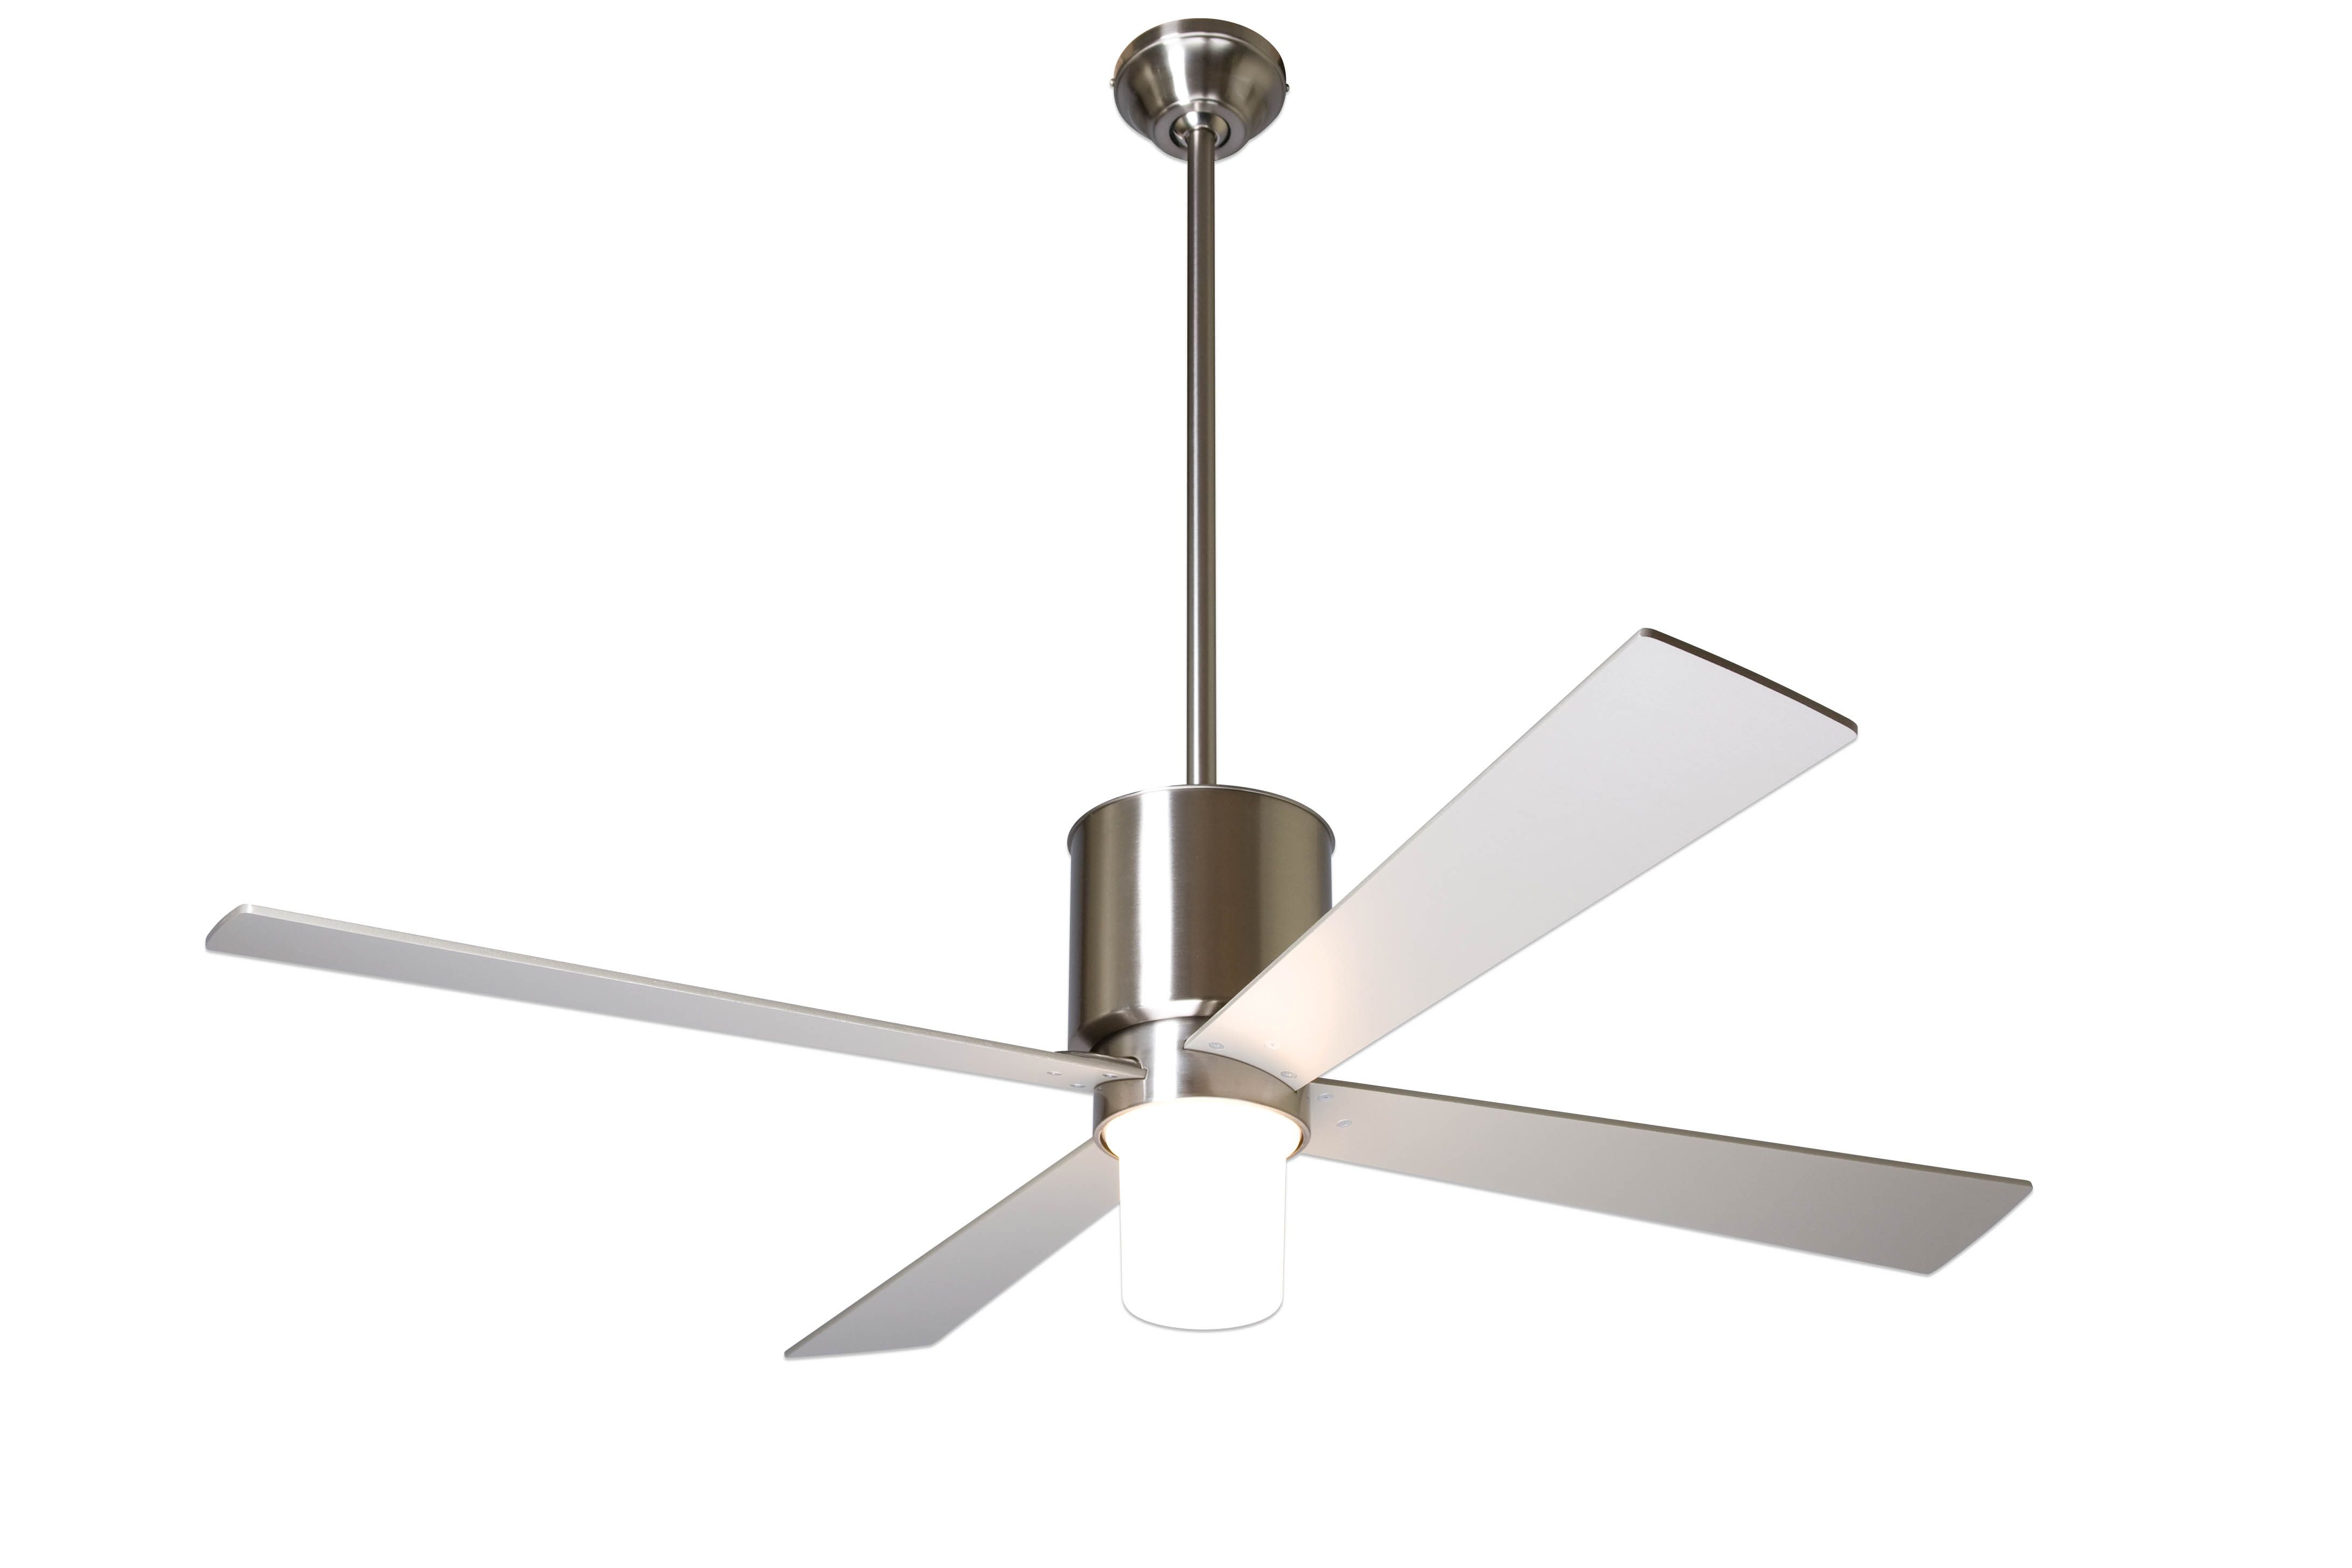 Ceiling Fans With Bright Lights And Remote